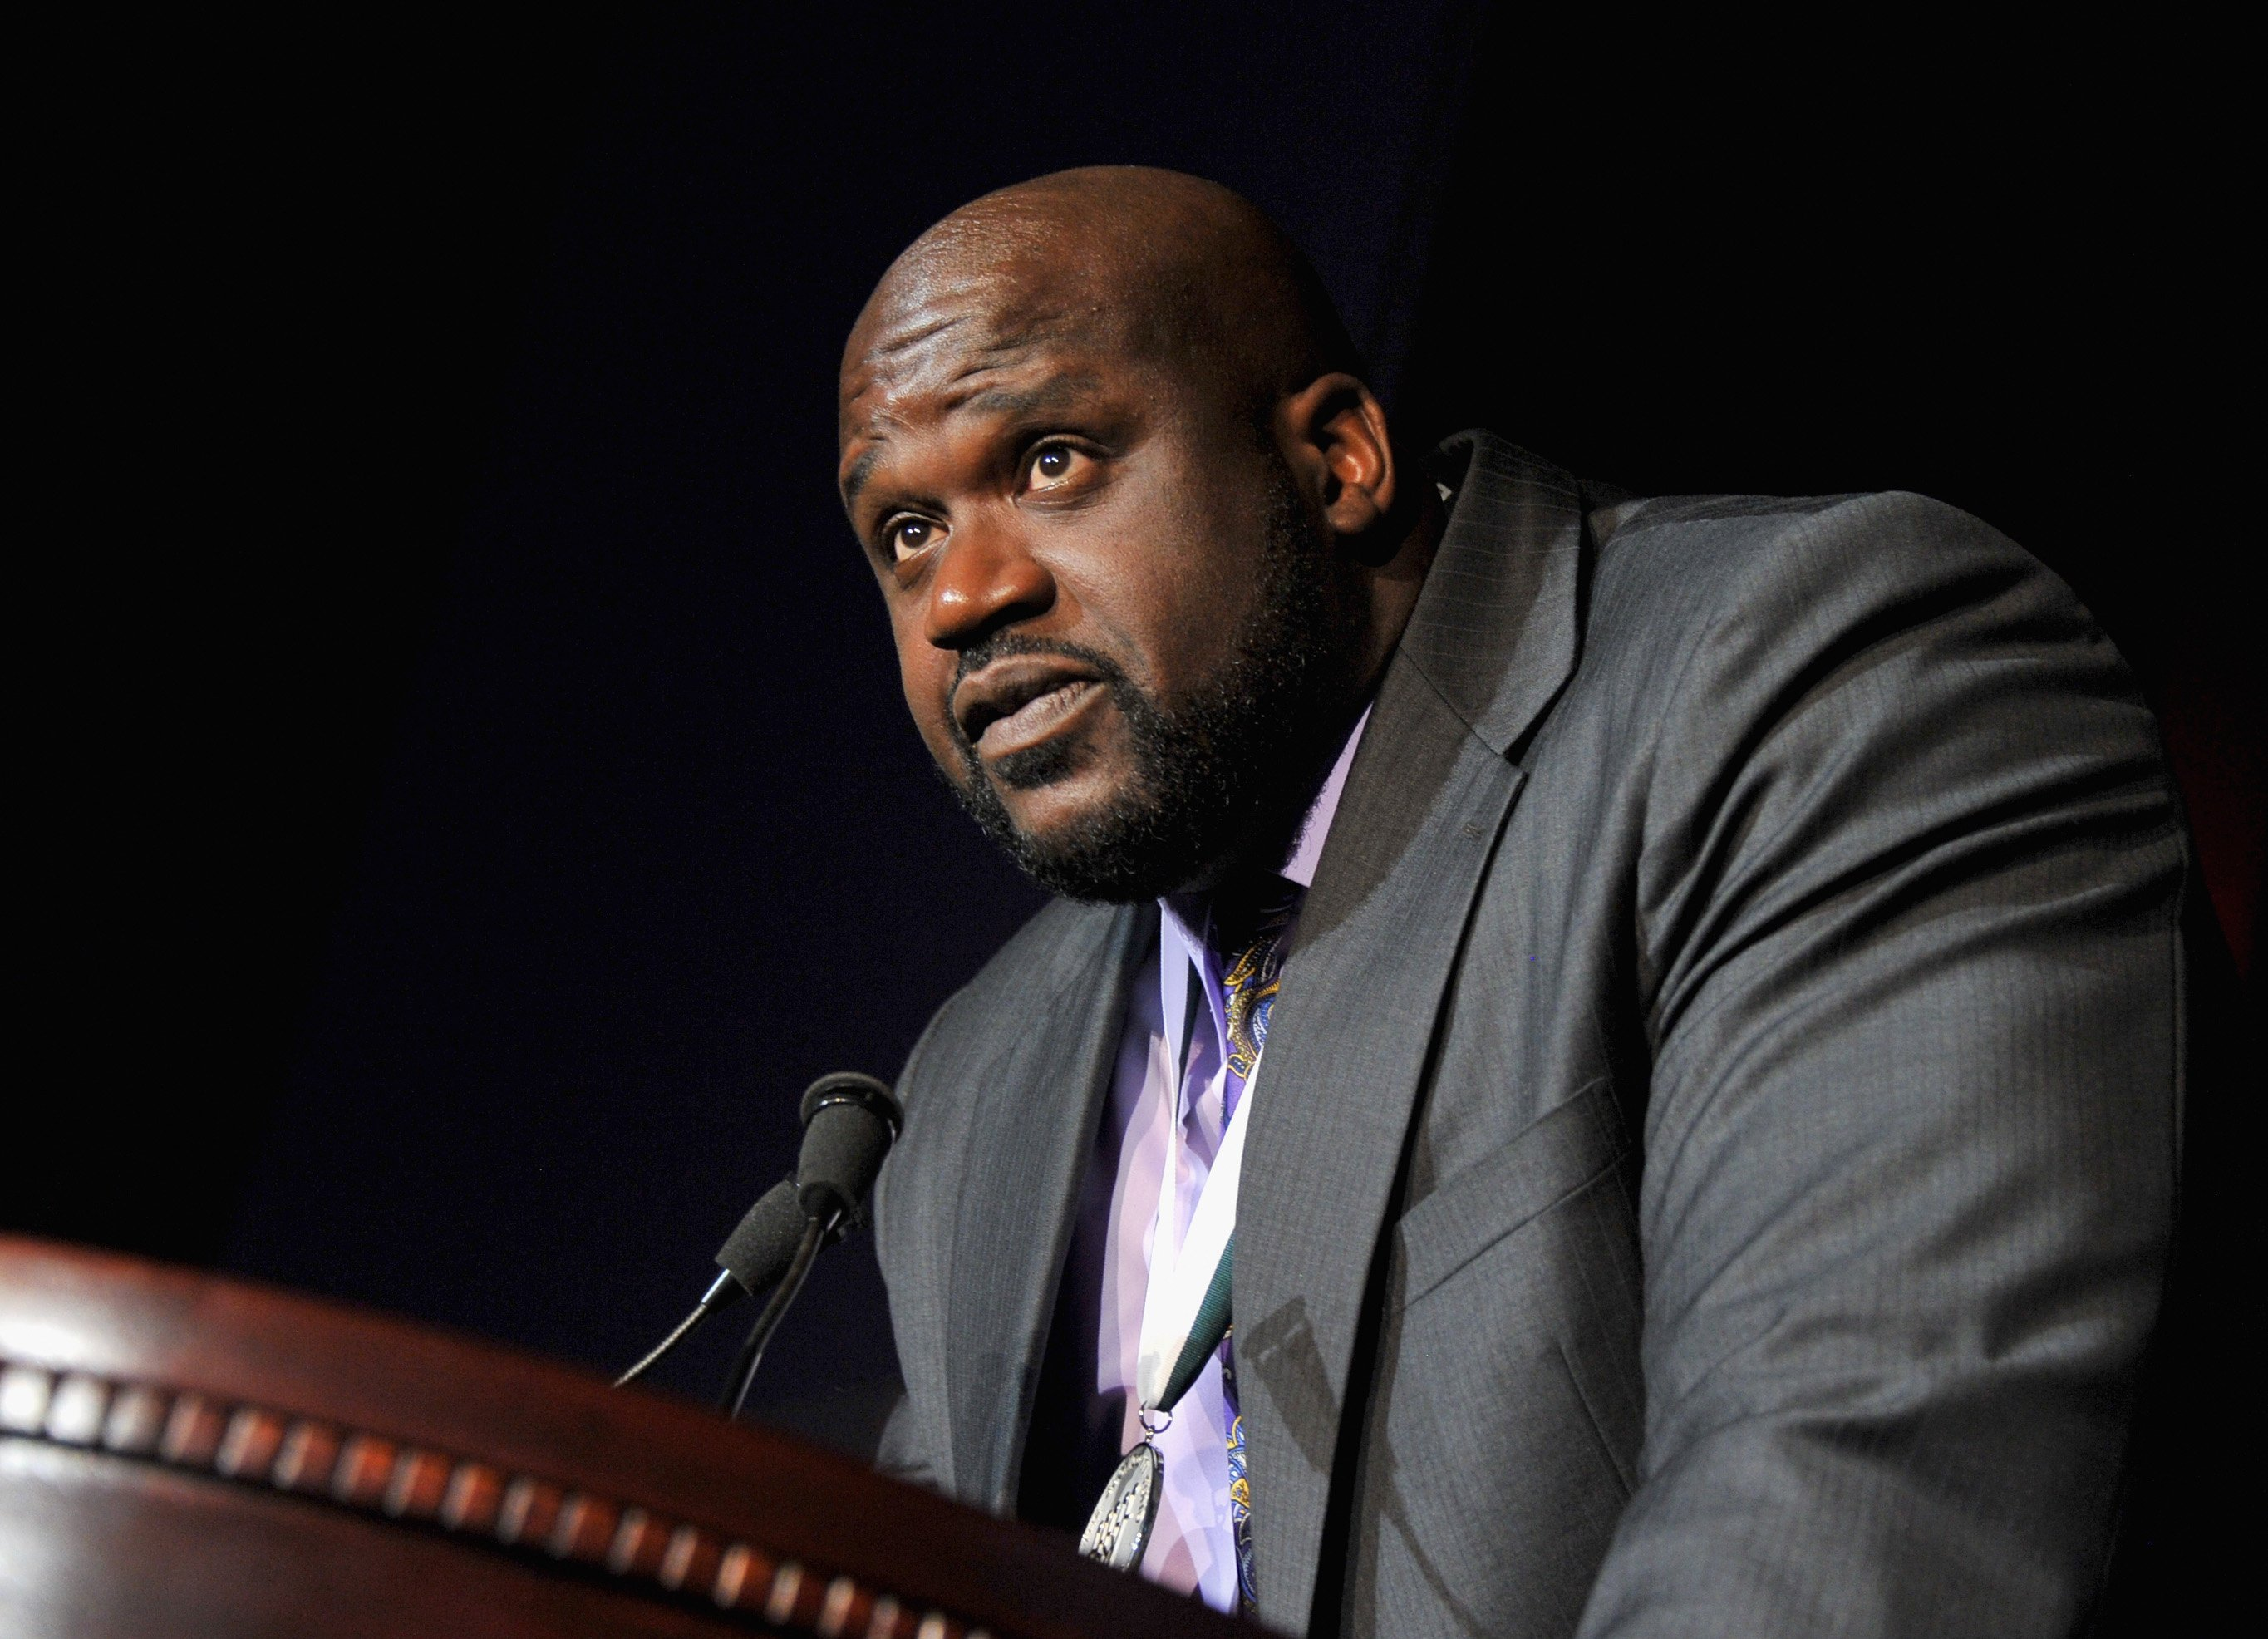 Shaquille O'Neal speaking at the 27th Annual Great Sports Legends Dinner in September 2012. | Photo: Getty Images